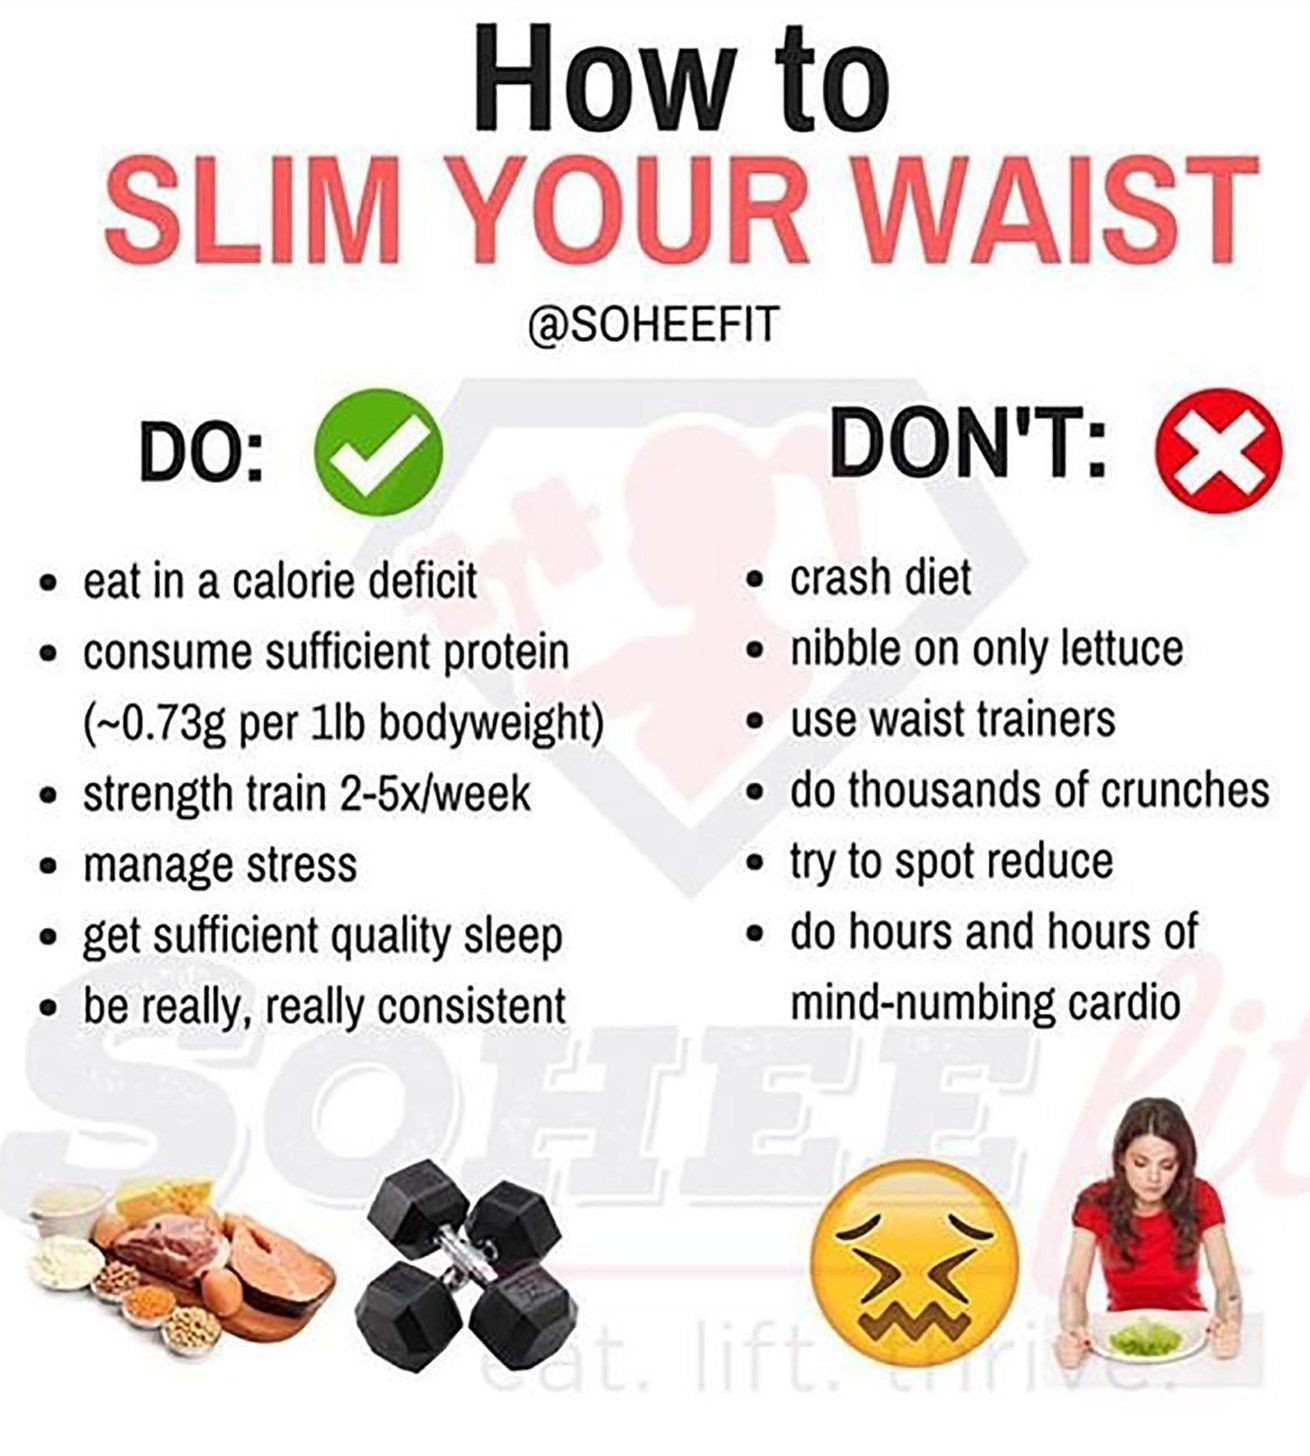 A Trainer Breaks Down the Dos and Don'ts of Slimming Your Waist